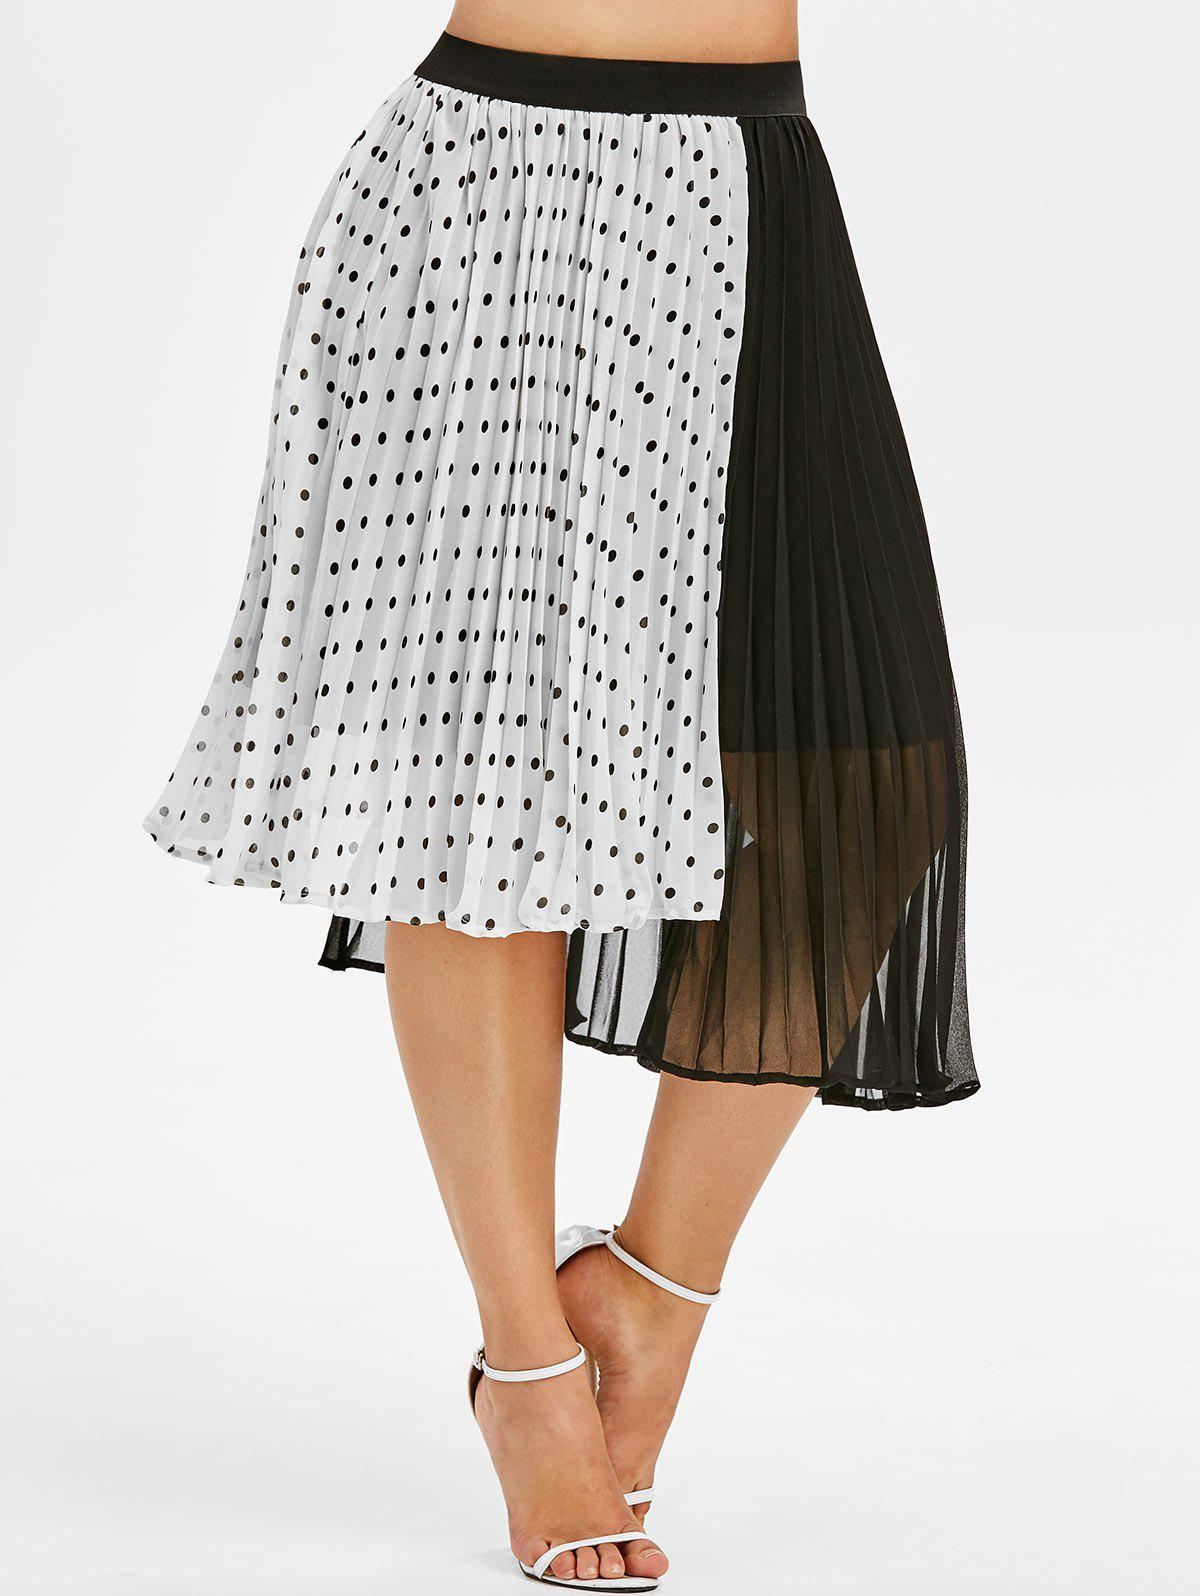 ac216174a5 38% OFF] Plus Size Polka Dot Color Block Midi Skirt | Rosegal